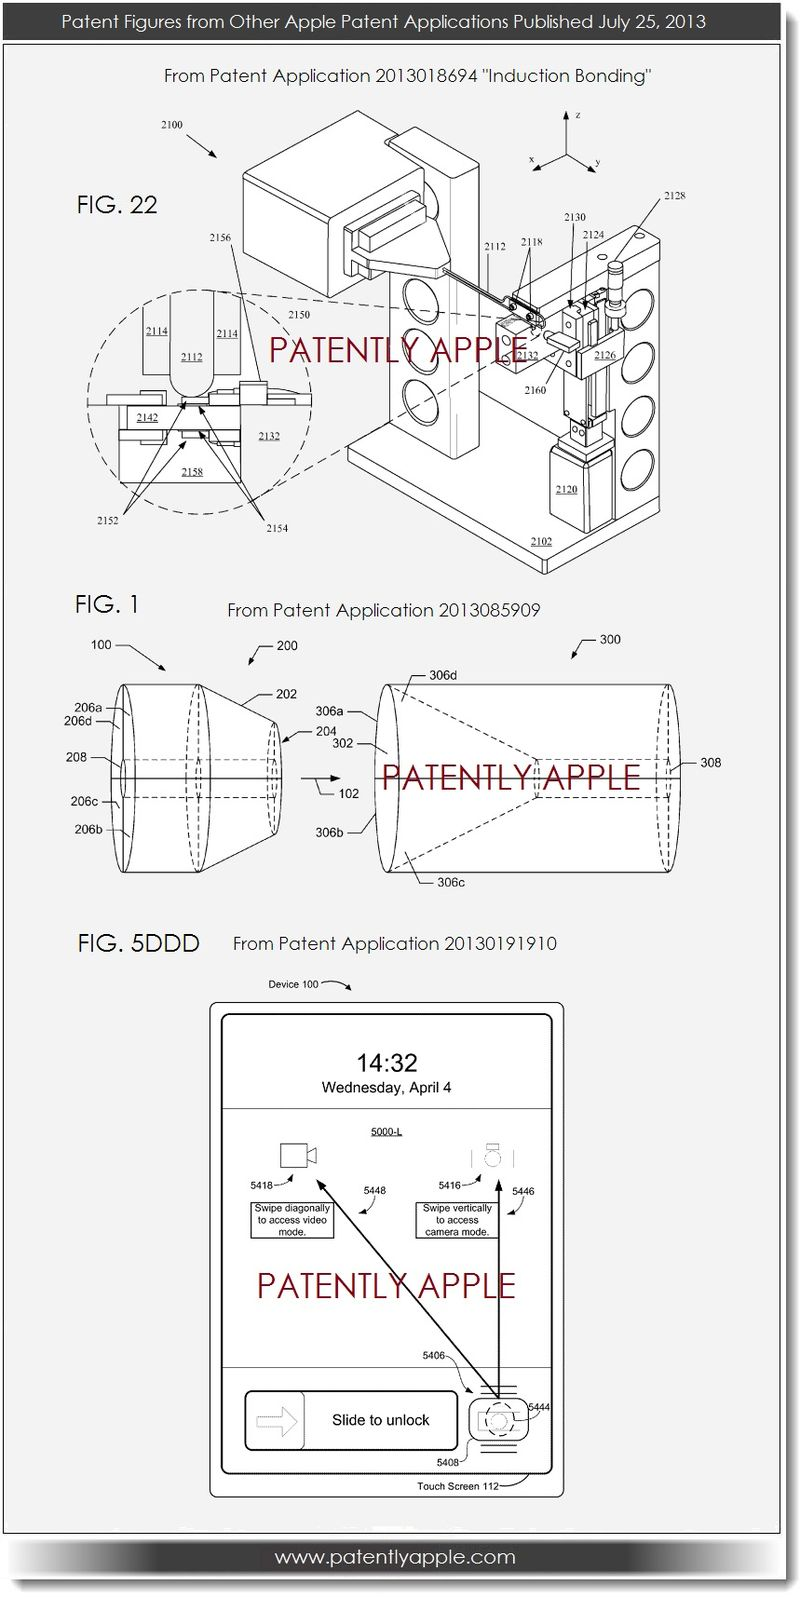 4. Various other Apple patent figures July 25, 2013